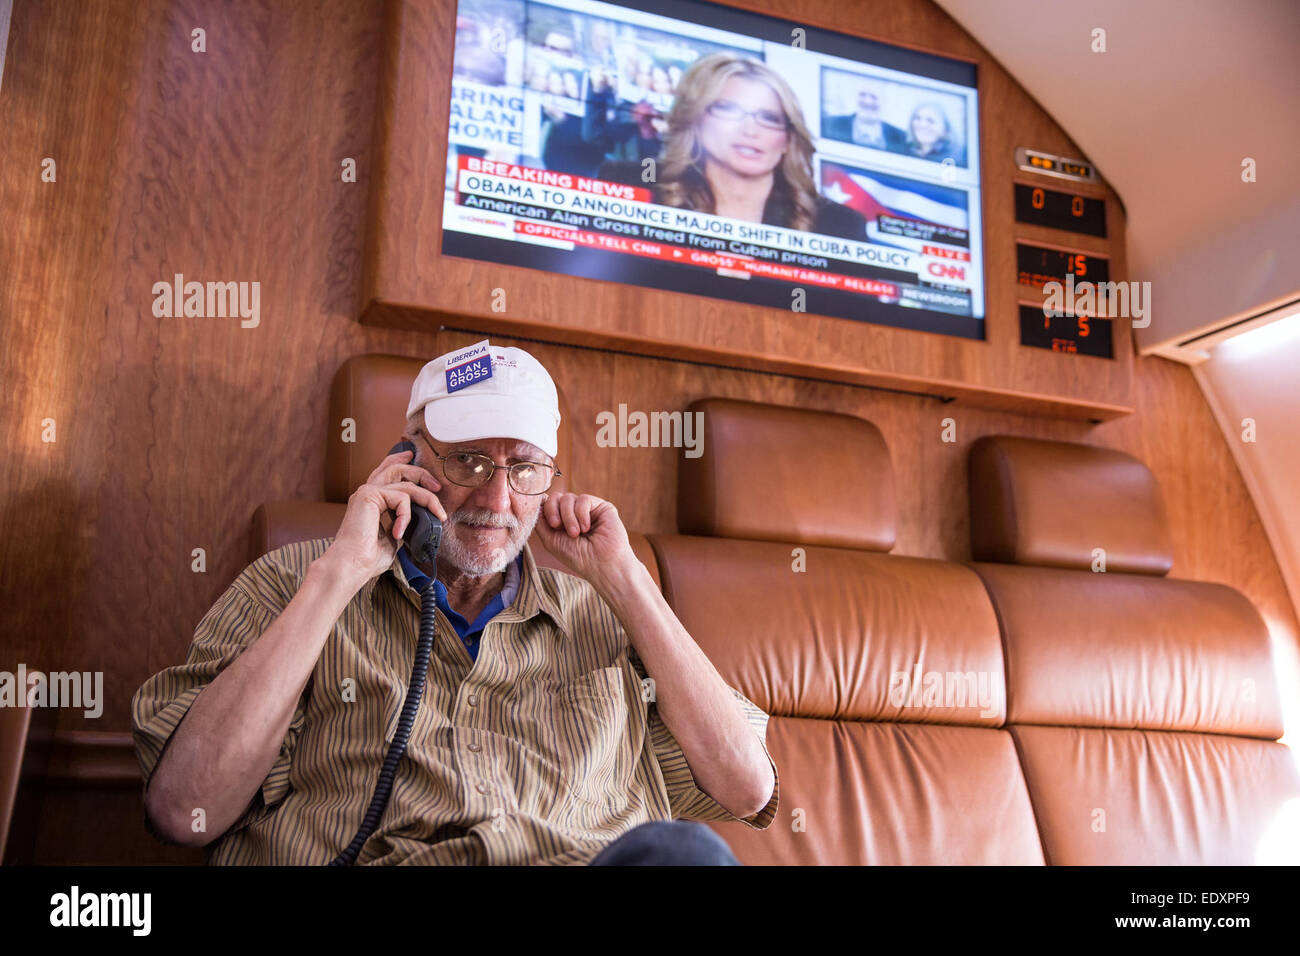 Alan Gross talks with President Obama onboard a government plane headed back to the US, Dec. 17, 2014. - Stock Image